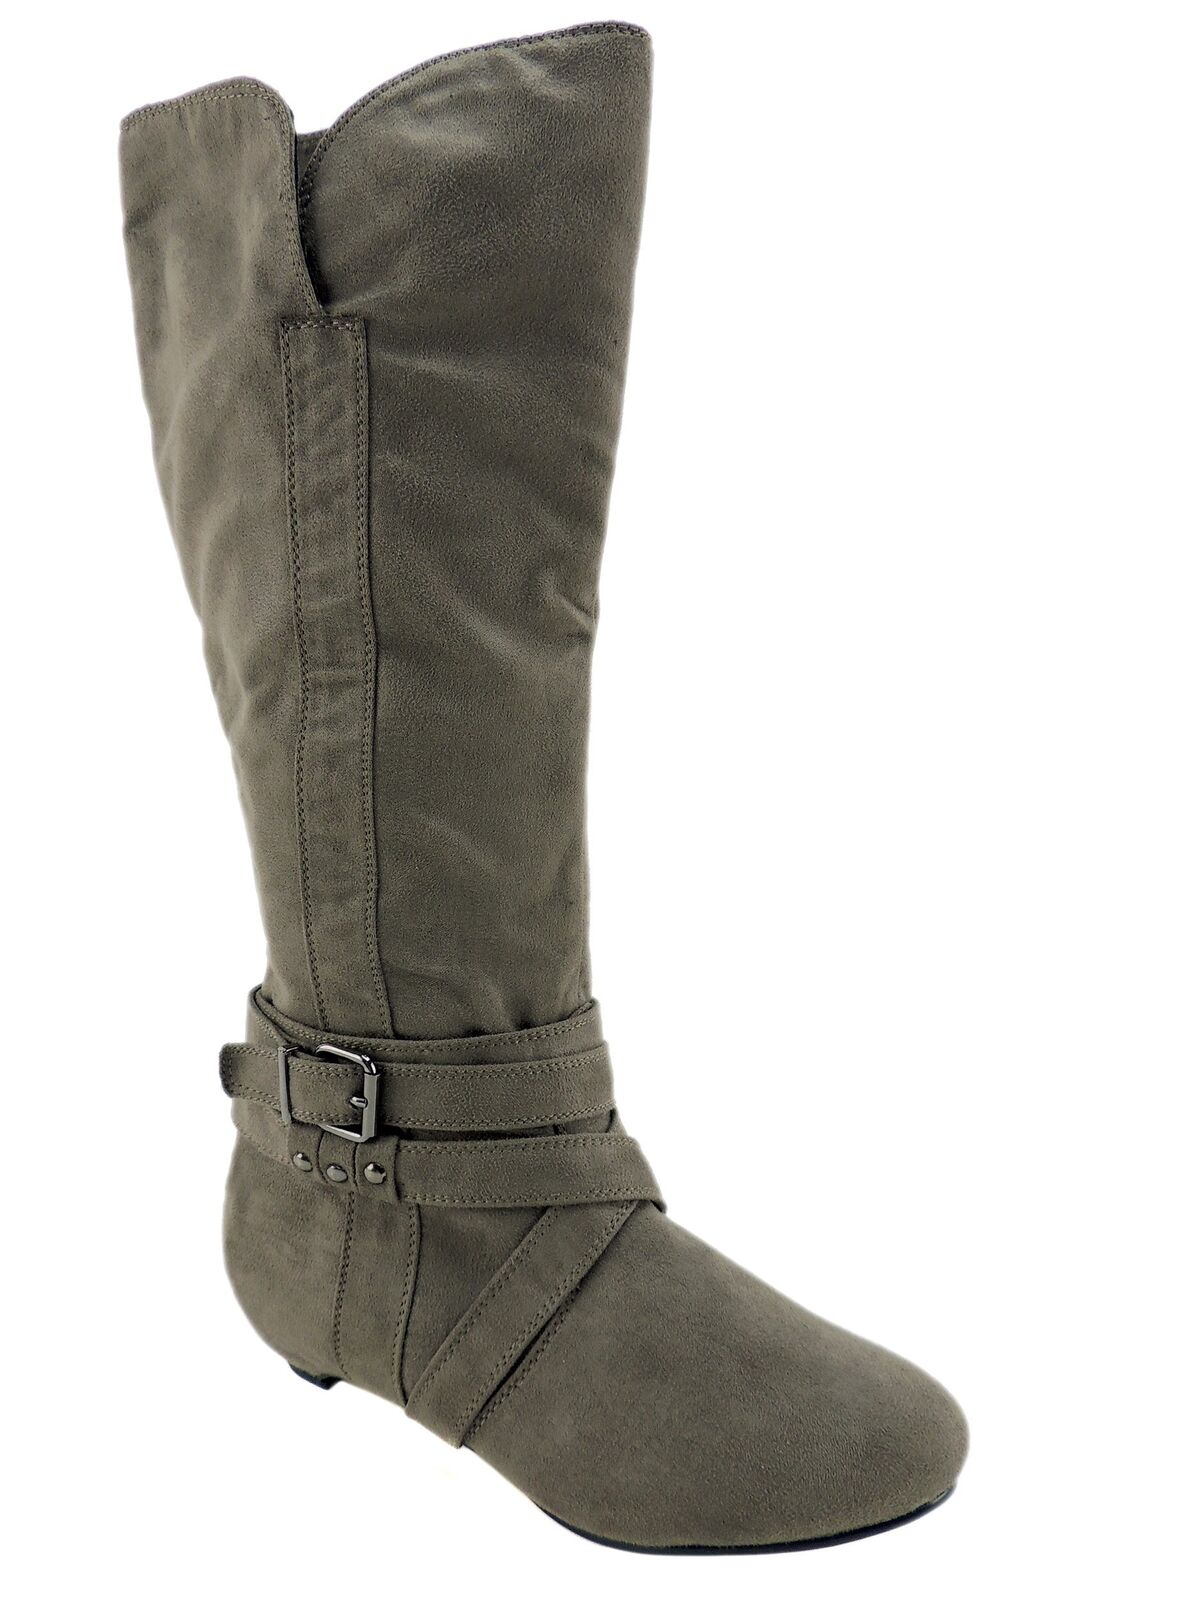 Journee Women's Link-19 Slouch Boots Faux Suede Taupe Size EU 37 1/2/US 7.5 M